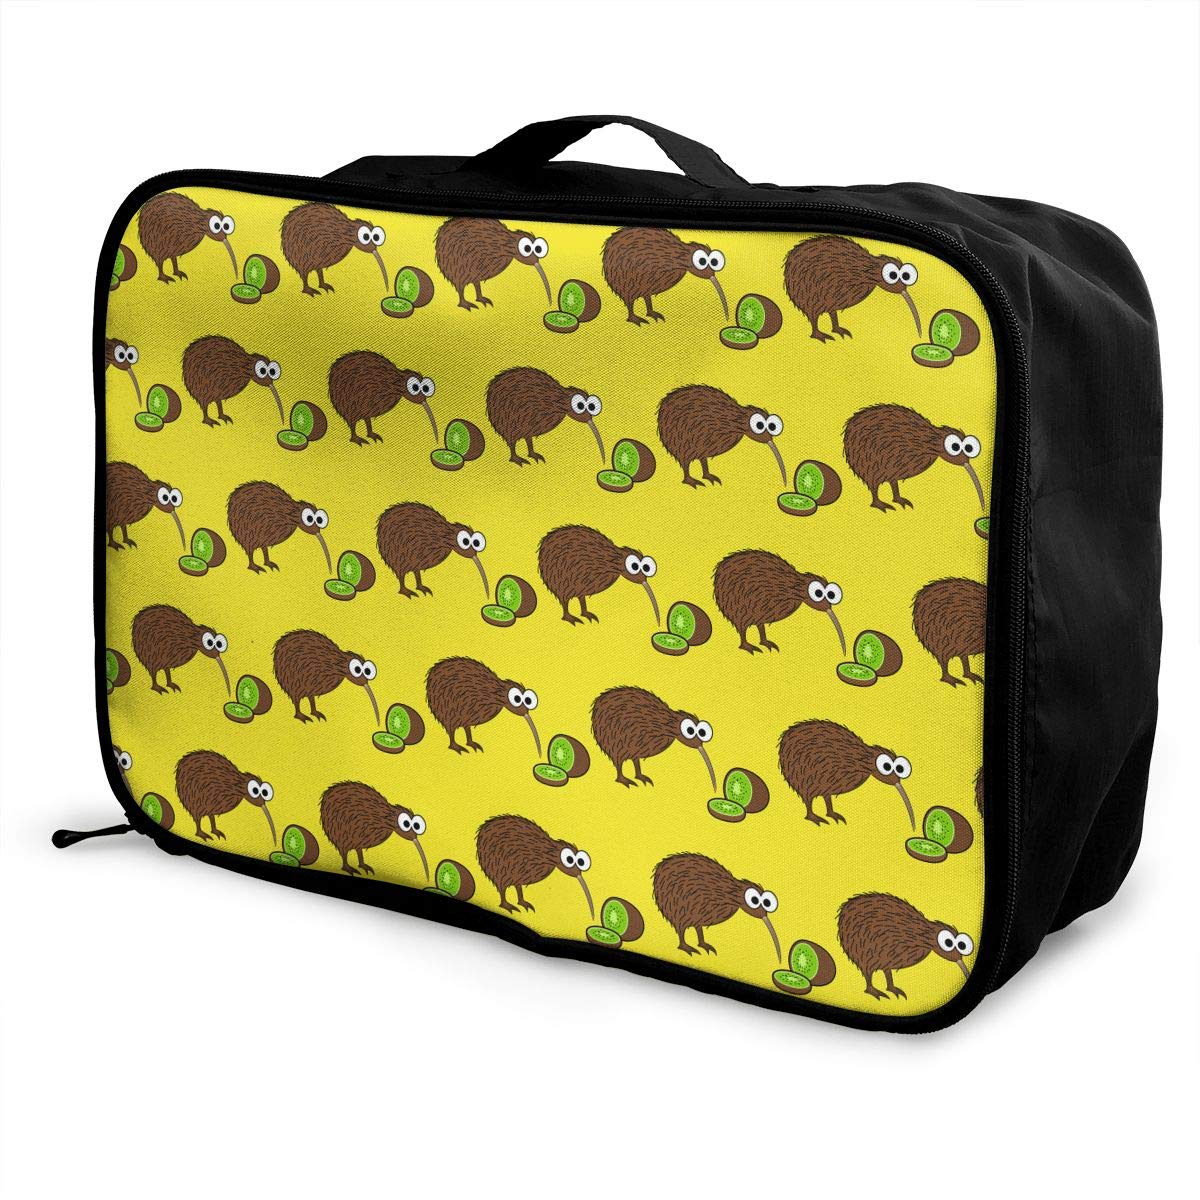 YueLJB Brown Kiwi Kiwi Fruits Lightweight Large Capacity Portable Luggage Bag Travel Duffel Bag Storage Carry Luggage Duffle Tote Bag